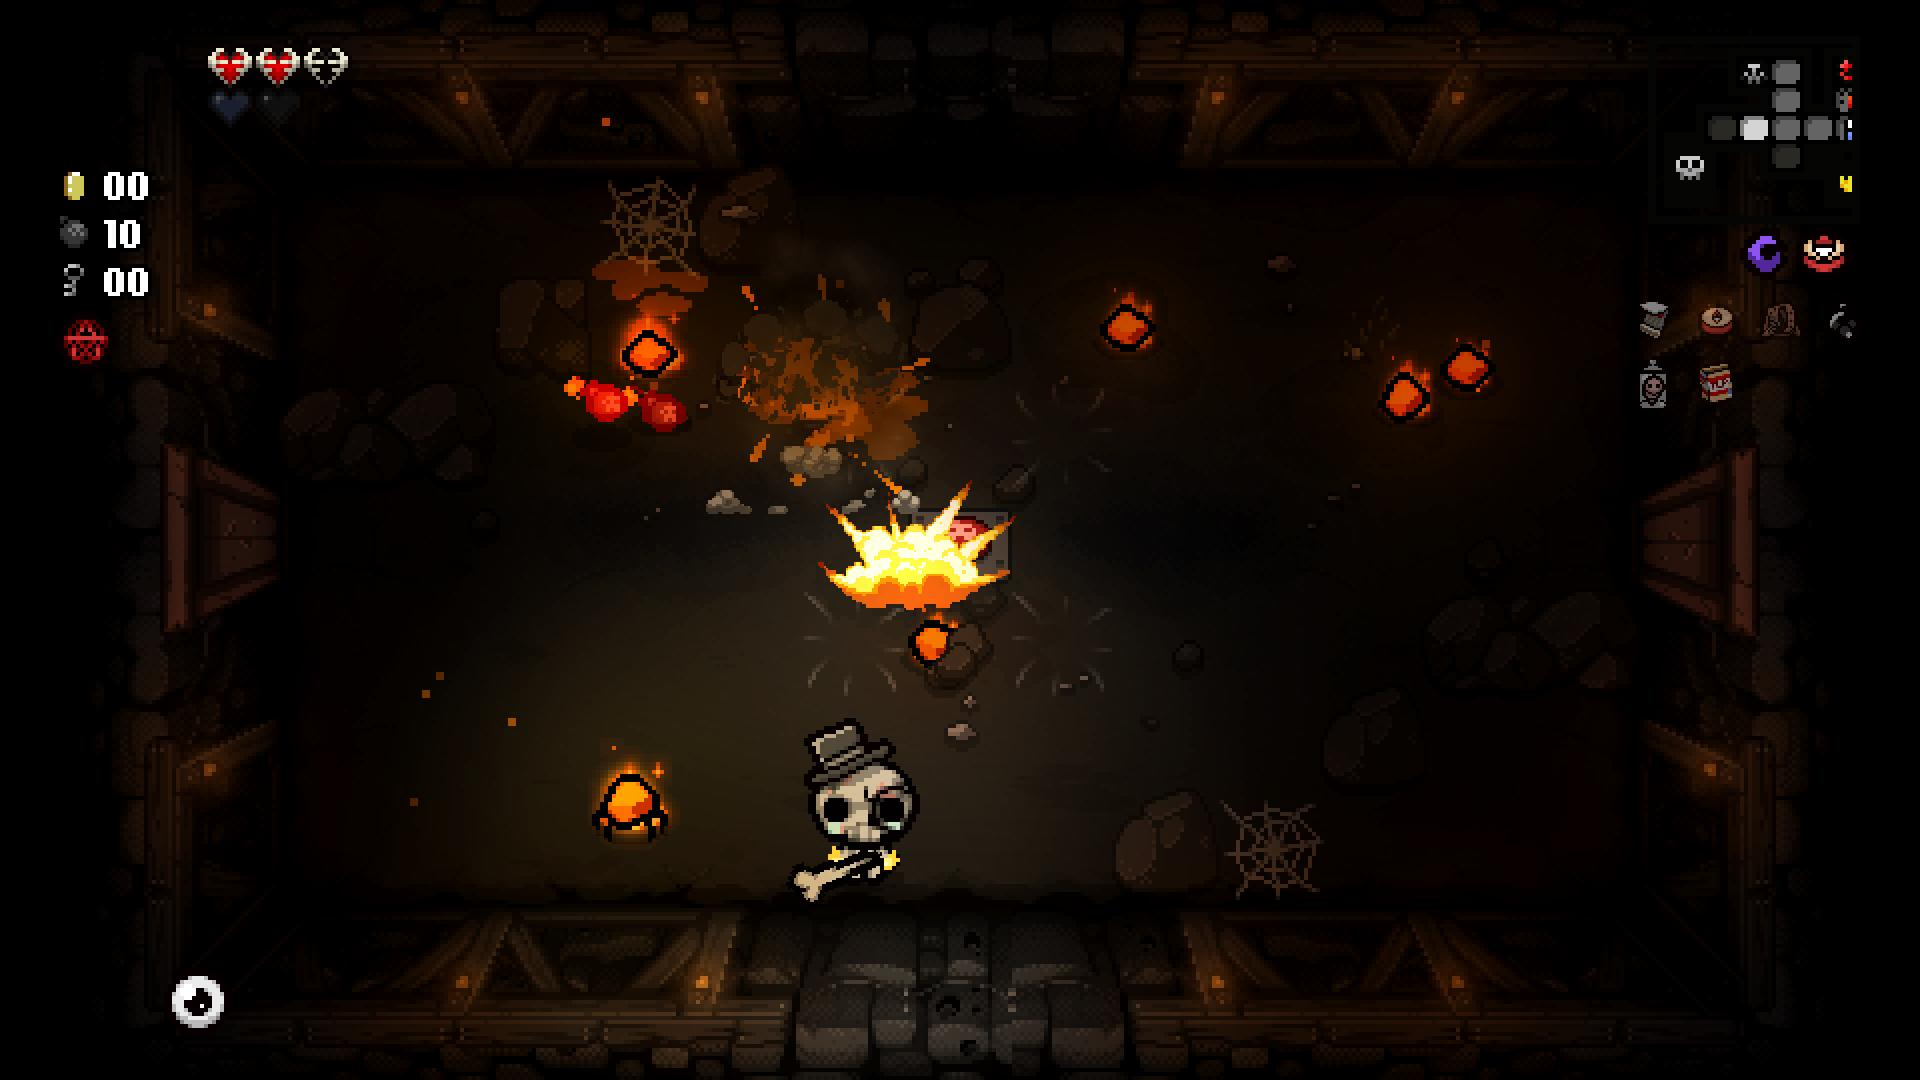 'The Binding of Isaac: Repentance' heads to Switch and PlayStation later this year - Engadget